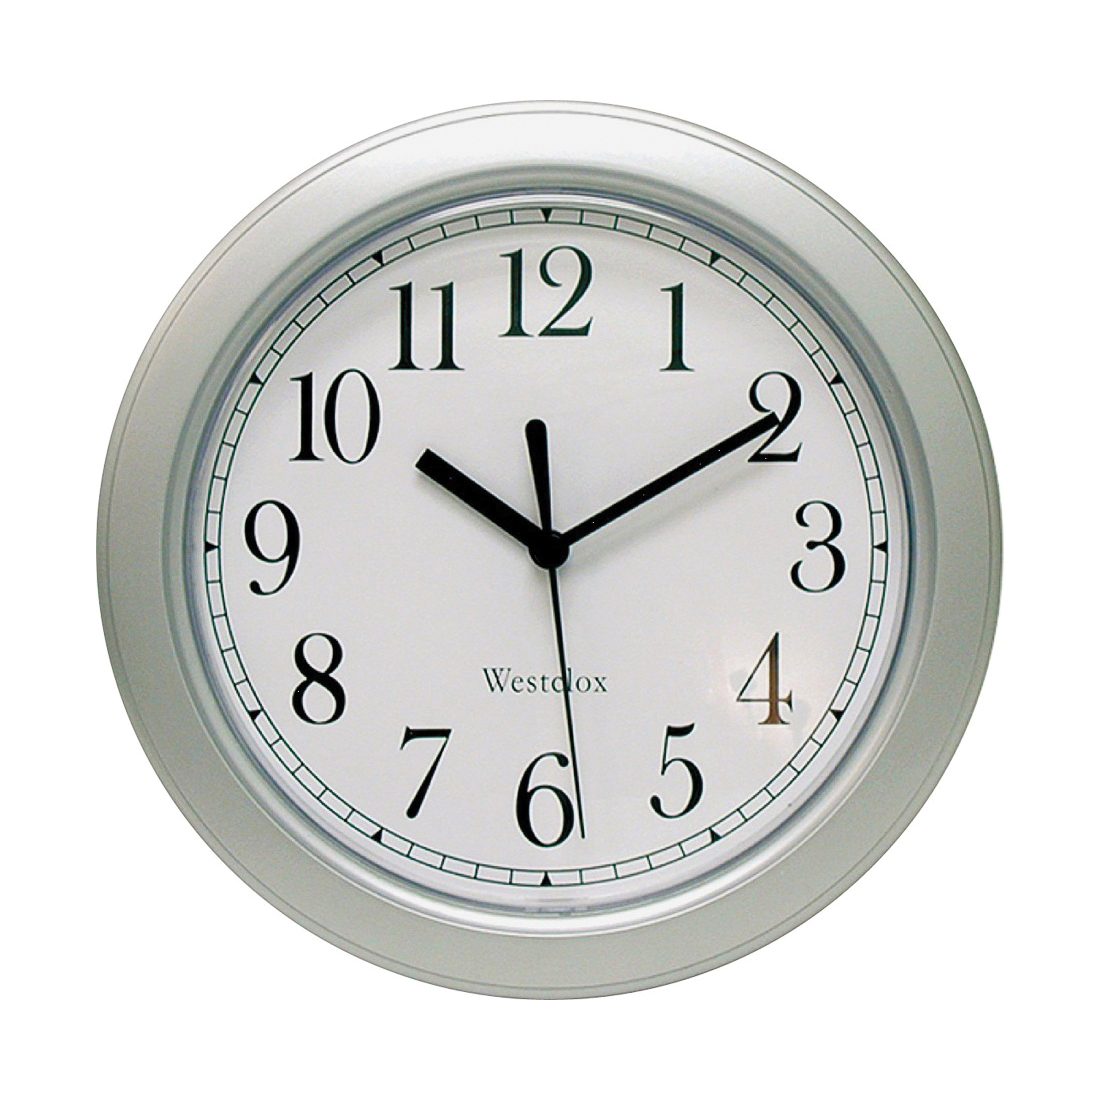 Picture of Westclox 46984A Wall Clock, Round, Analog, Plastic Frame, Silver Frame